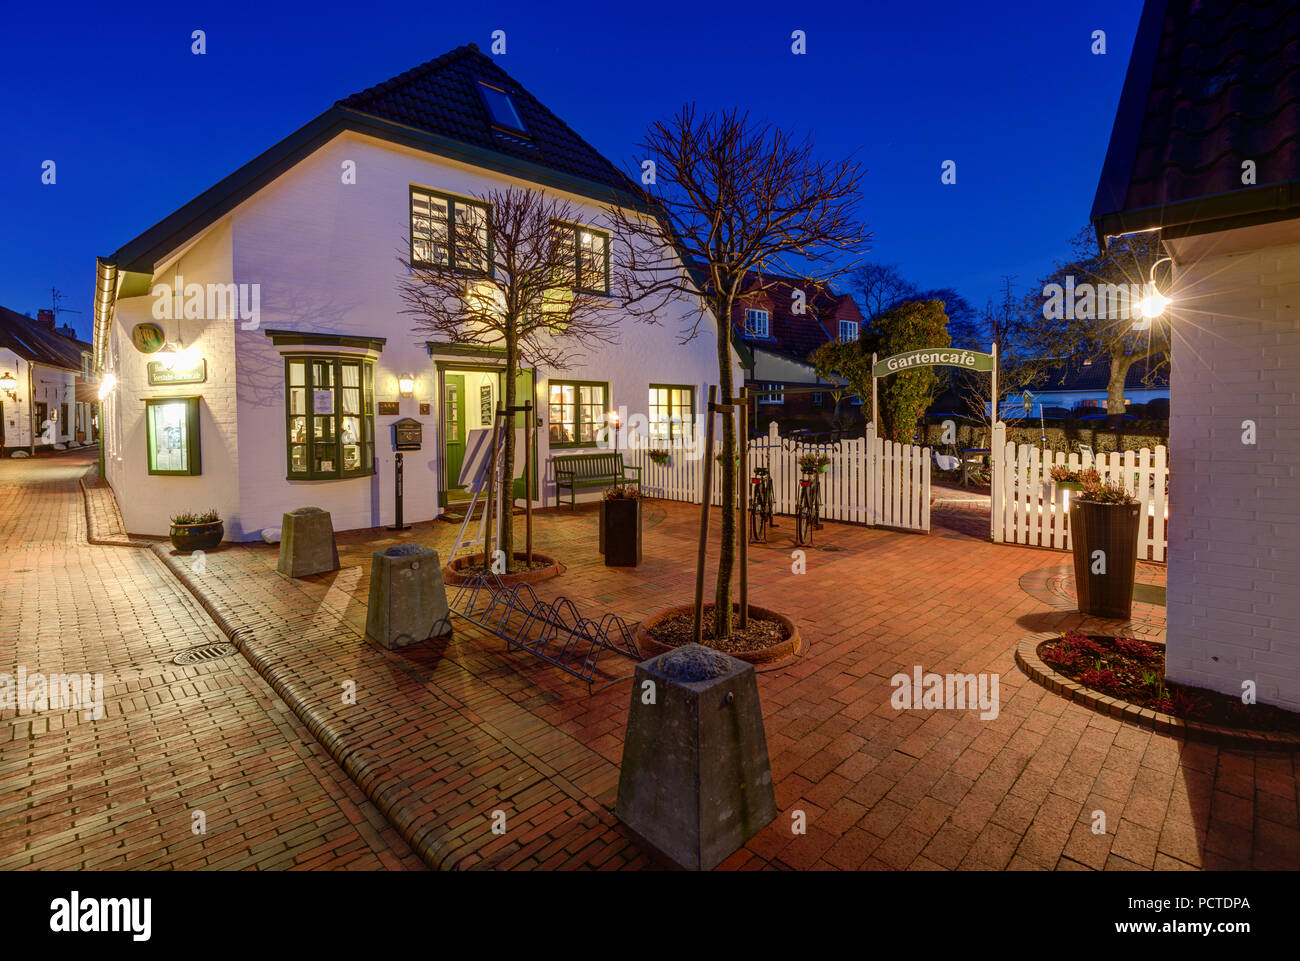 Blue hour, Greetsiel, Hotel, Restaurant Witthus, Facade, East Frisia, Lower Saxony, Germany, Stock Photo